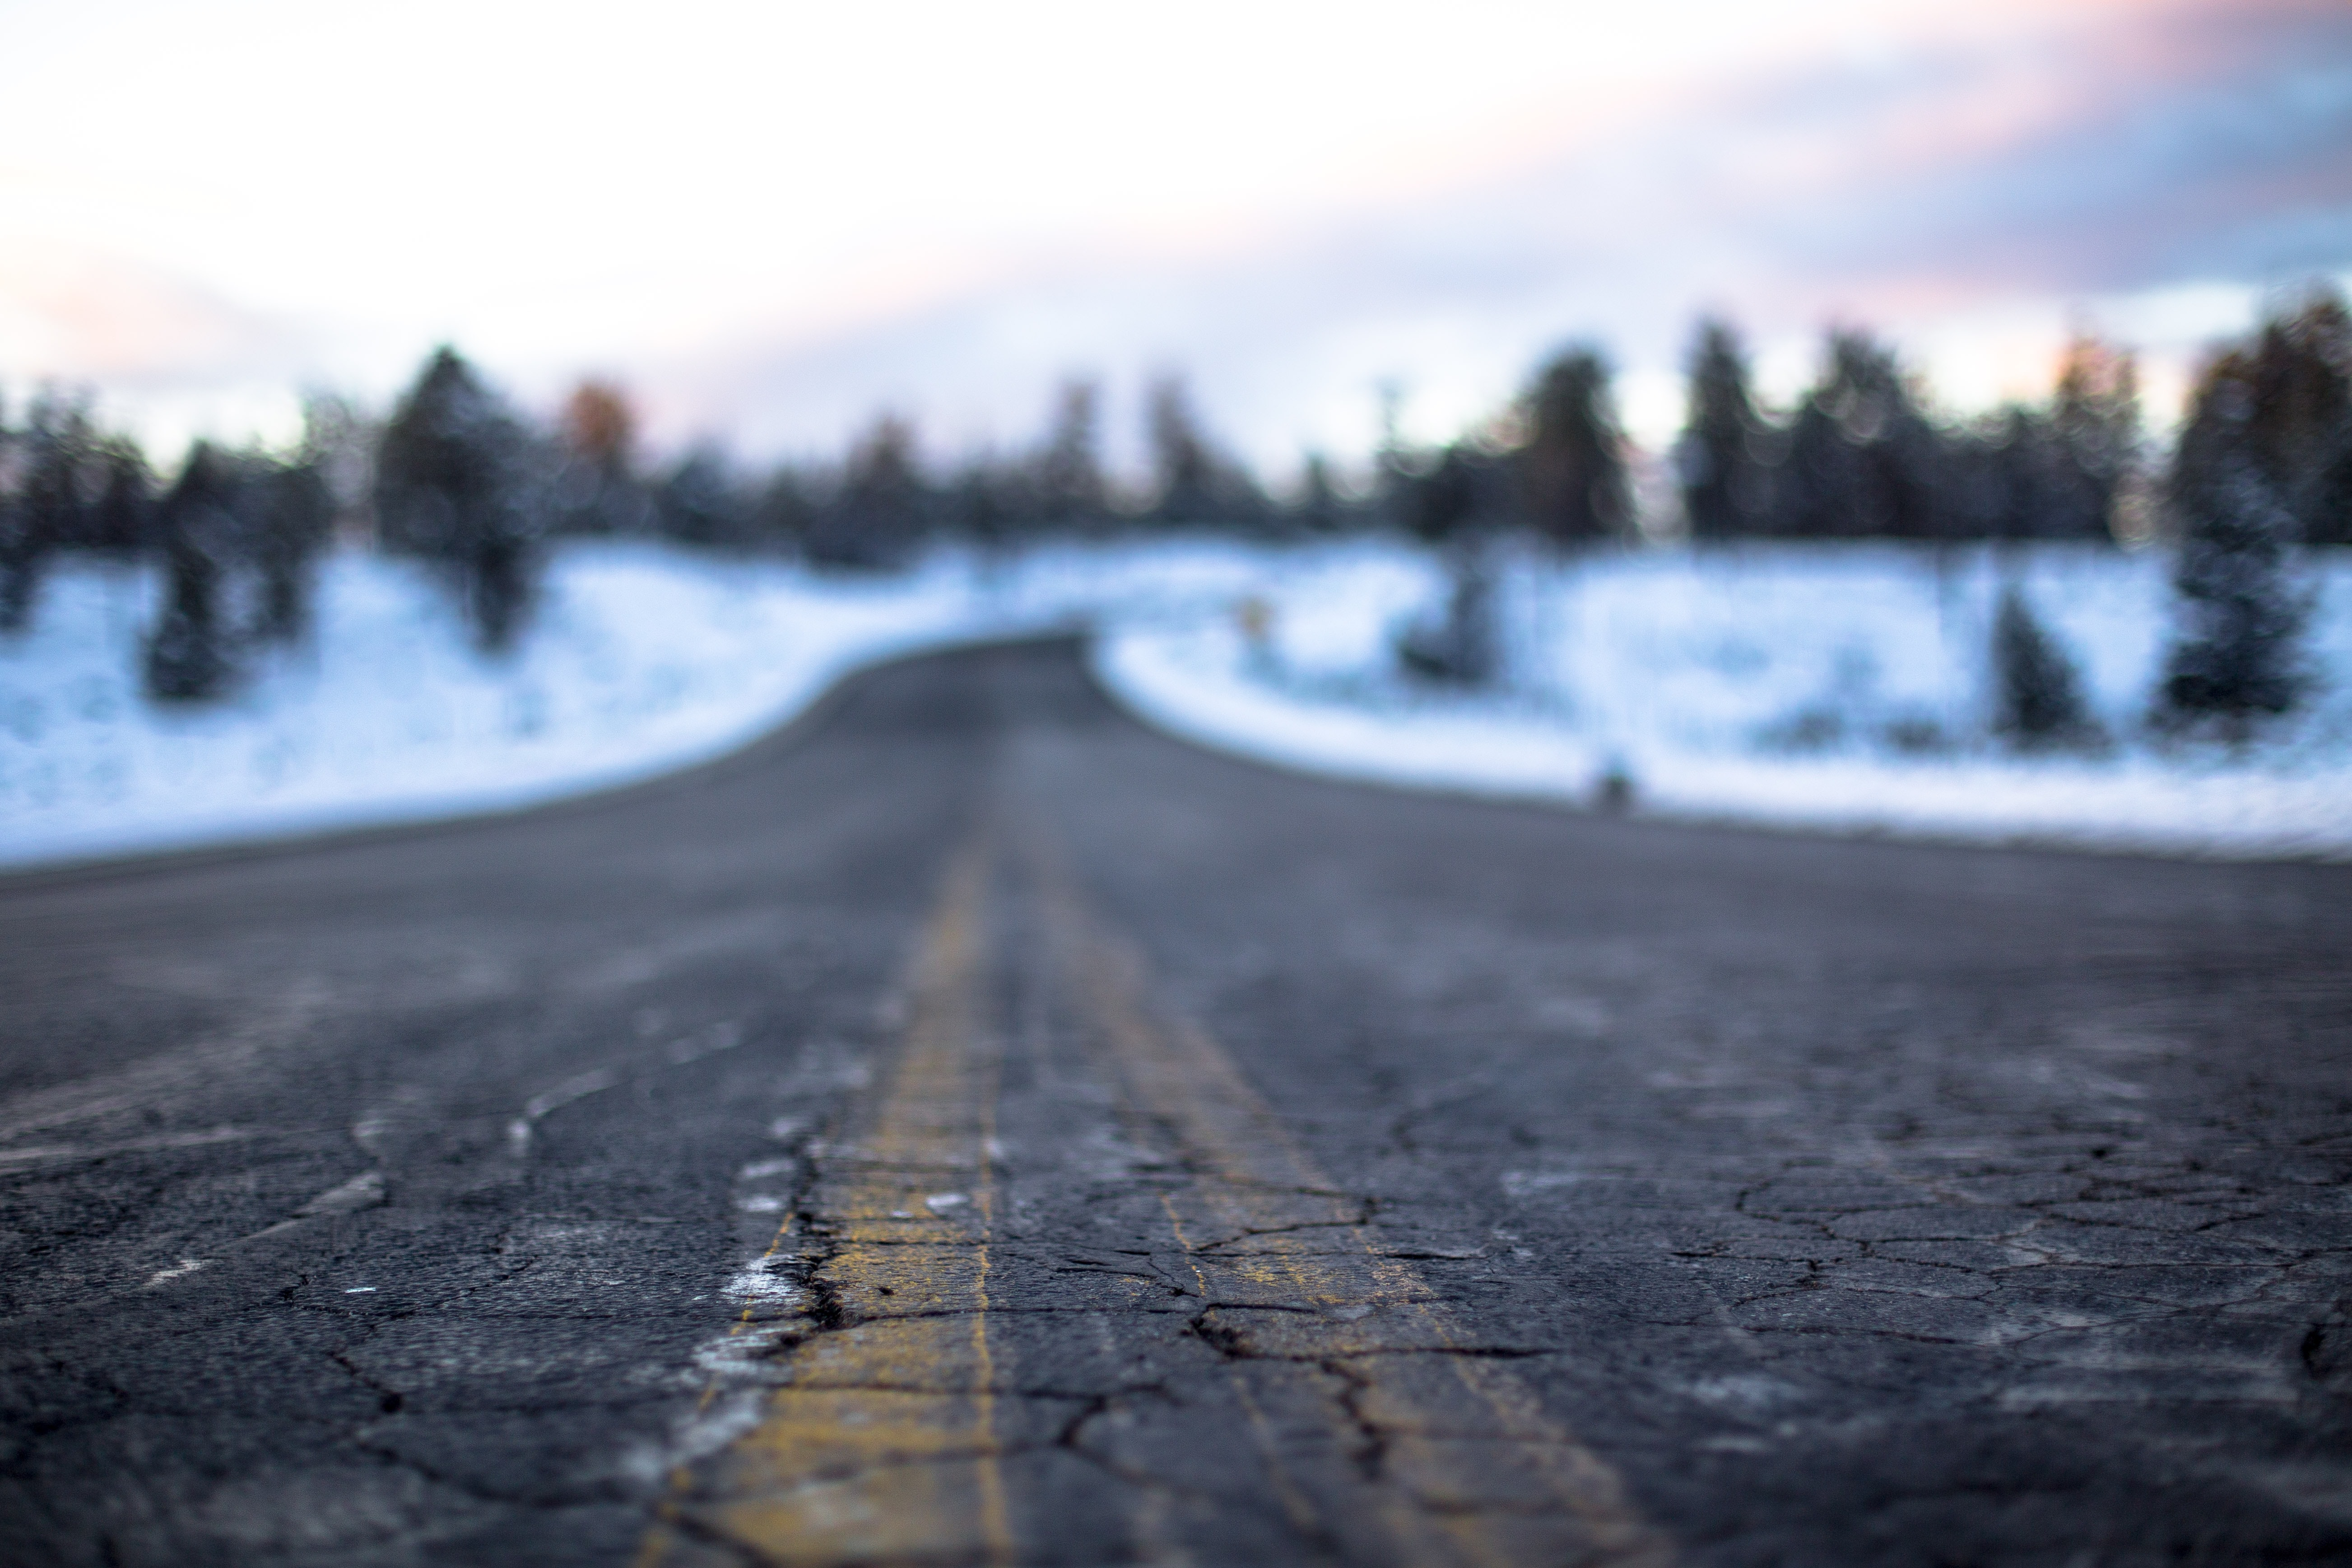 A cracked road in the Grand Canyon is passing a winter landscape with trees